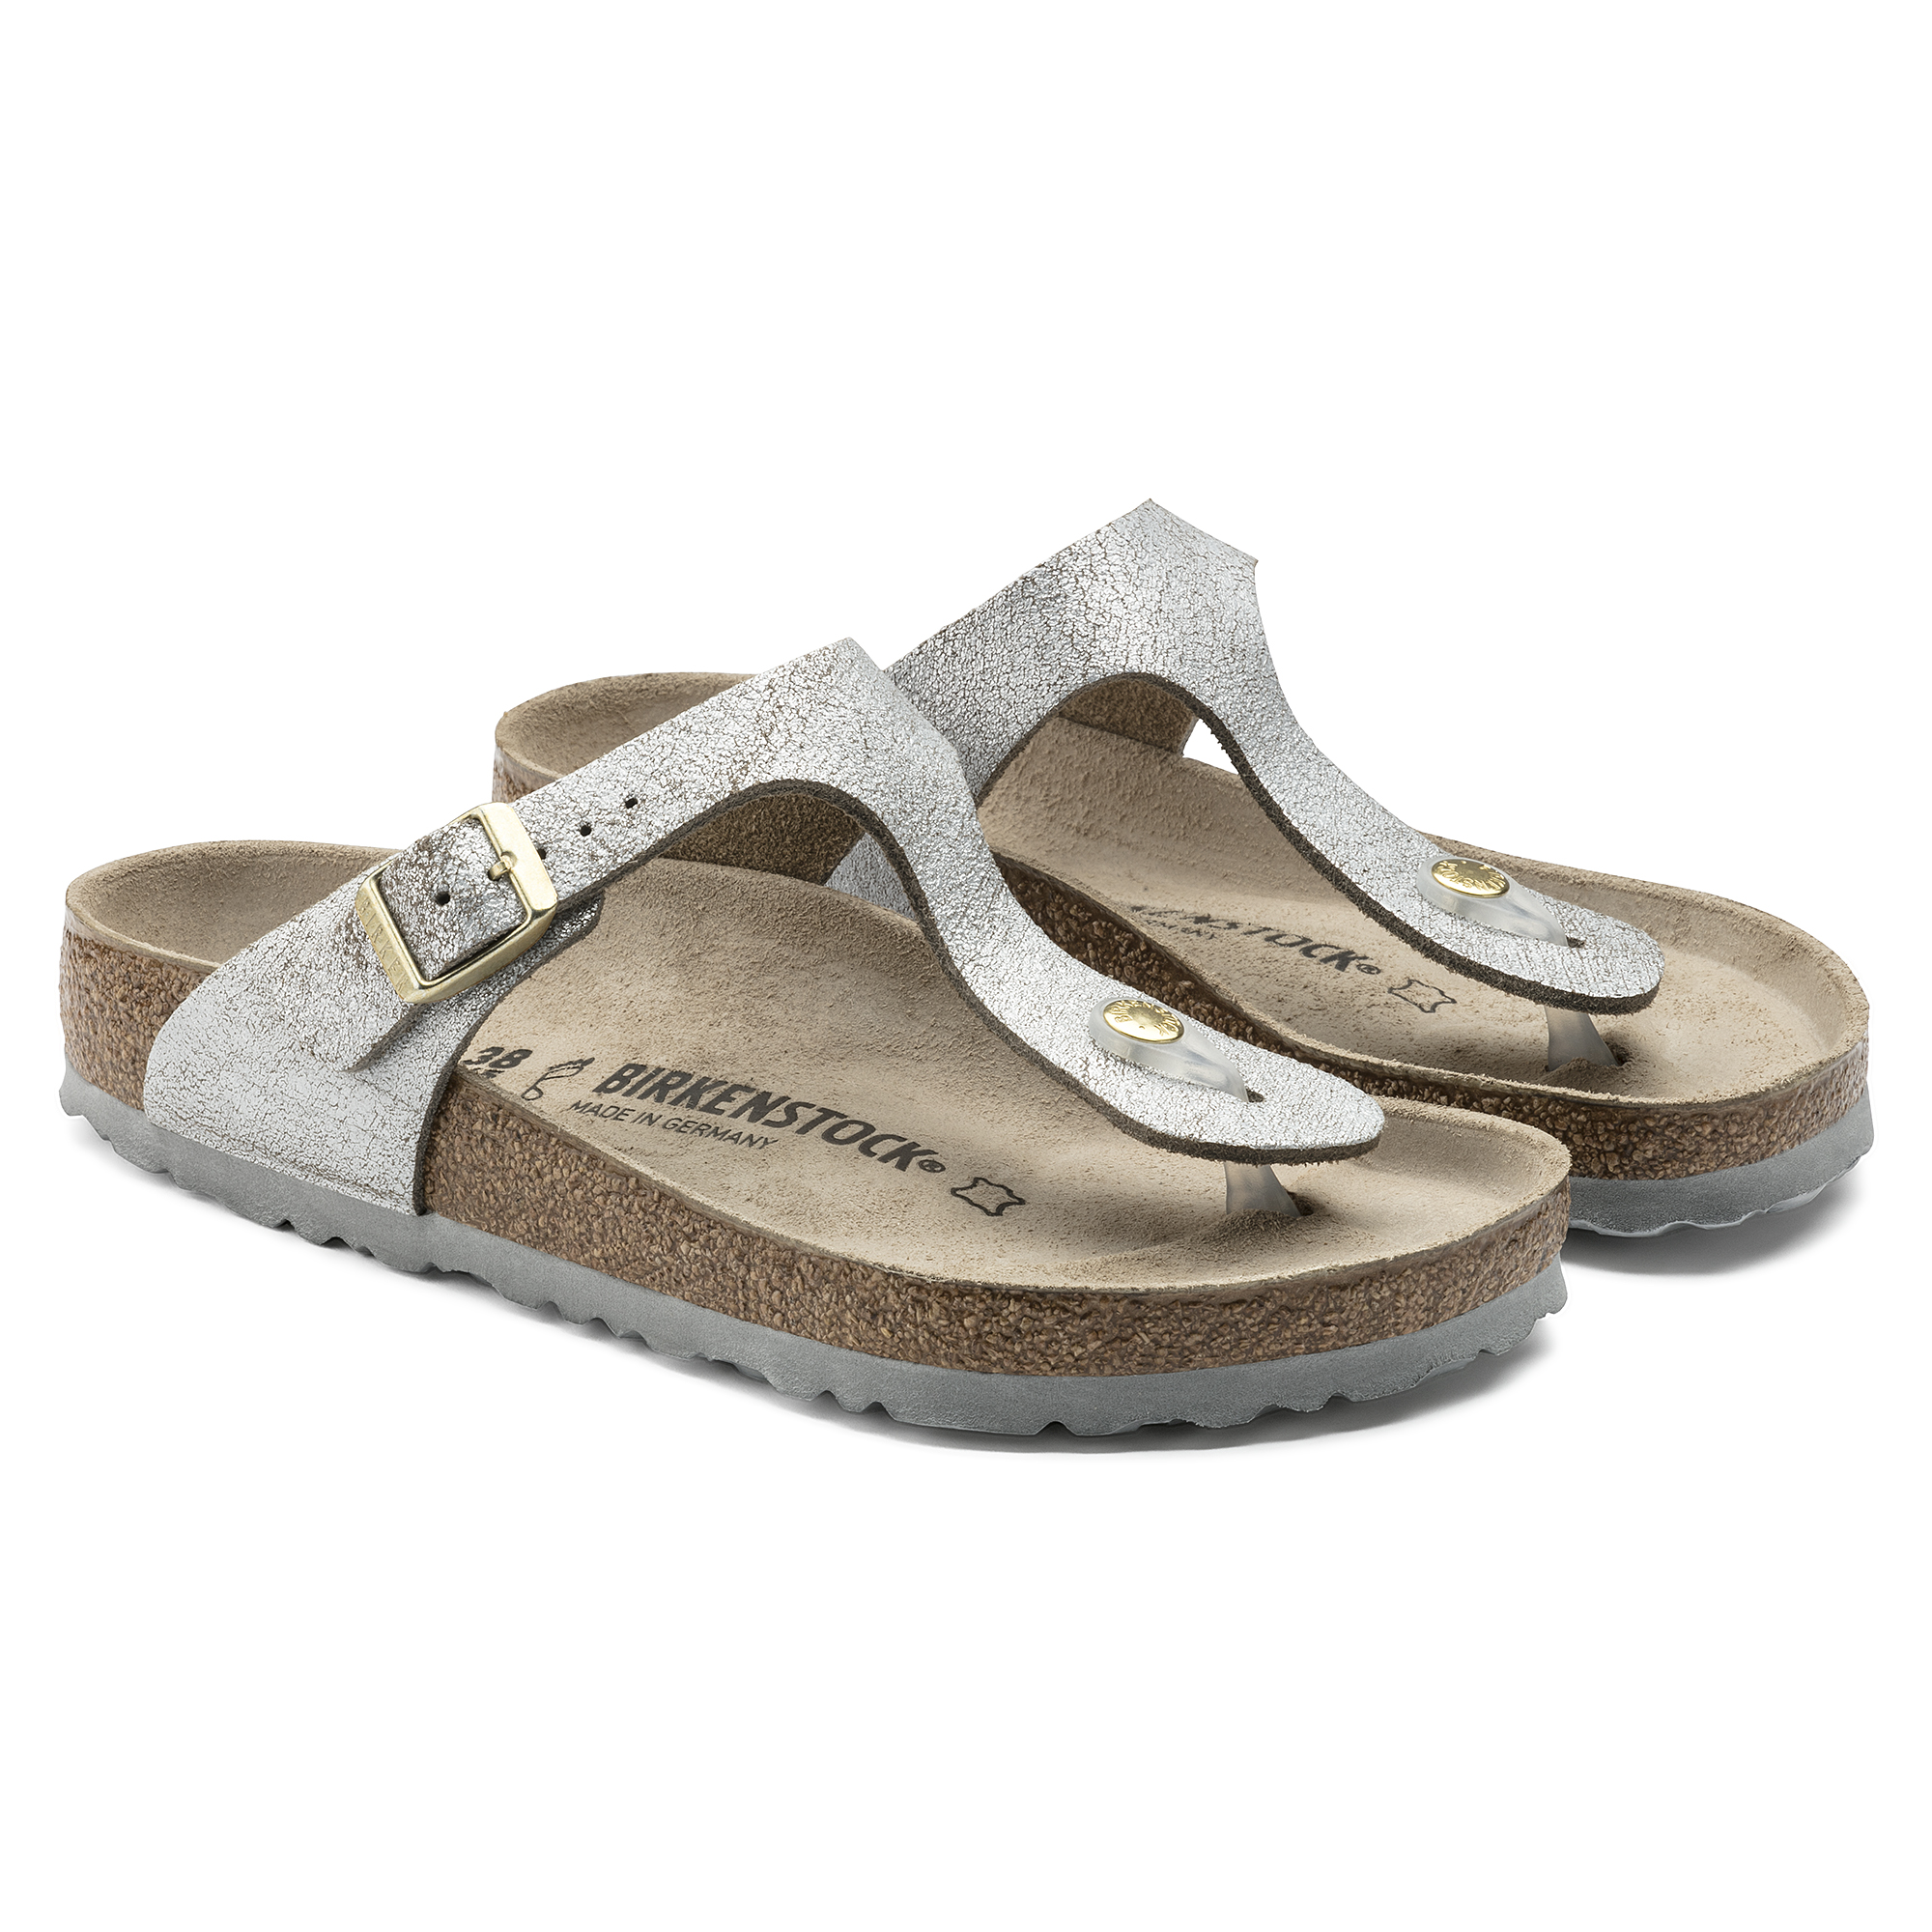 129bece455b7 ... Gizeh Suede Leather Washed Metallic Blue Silver ...